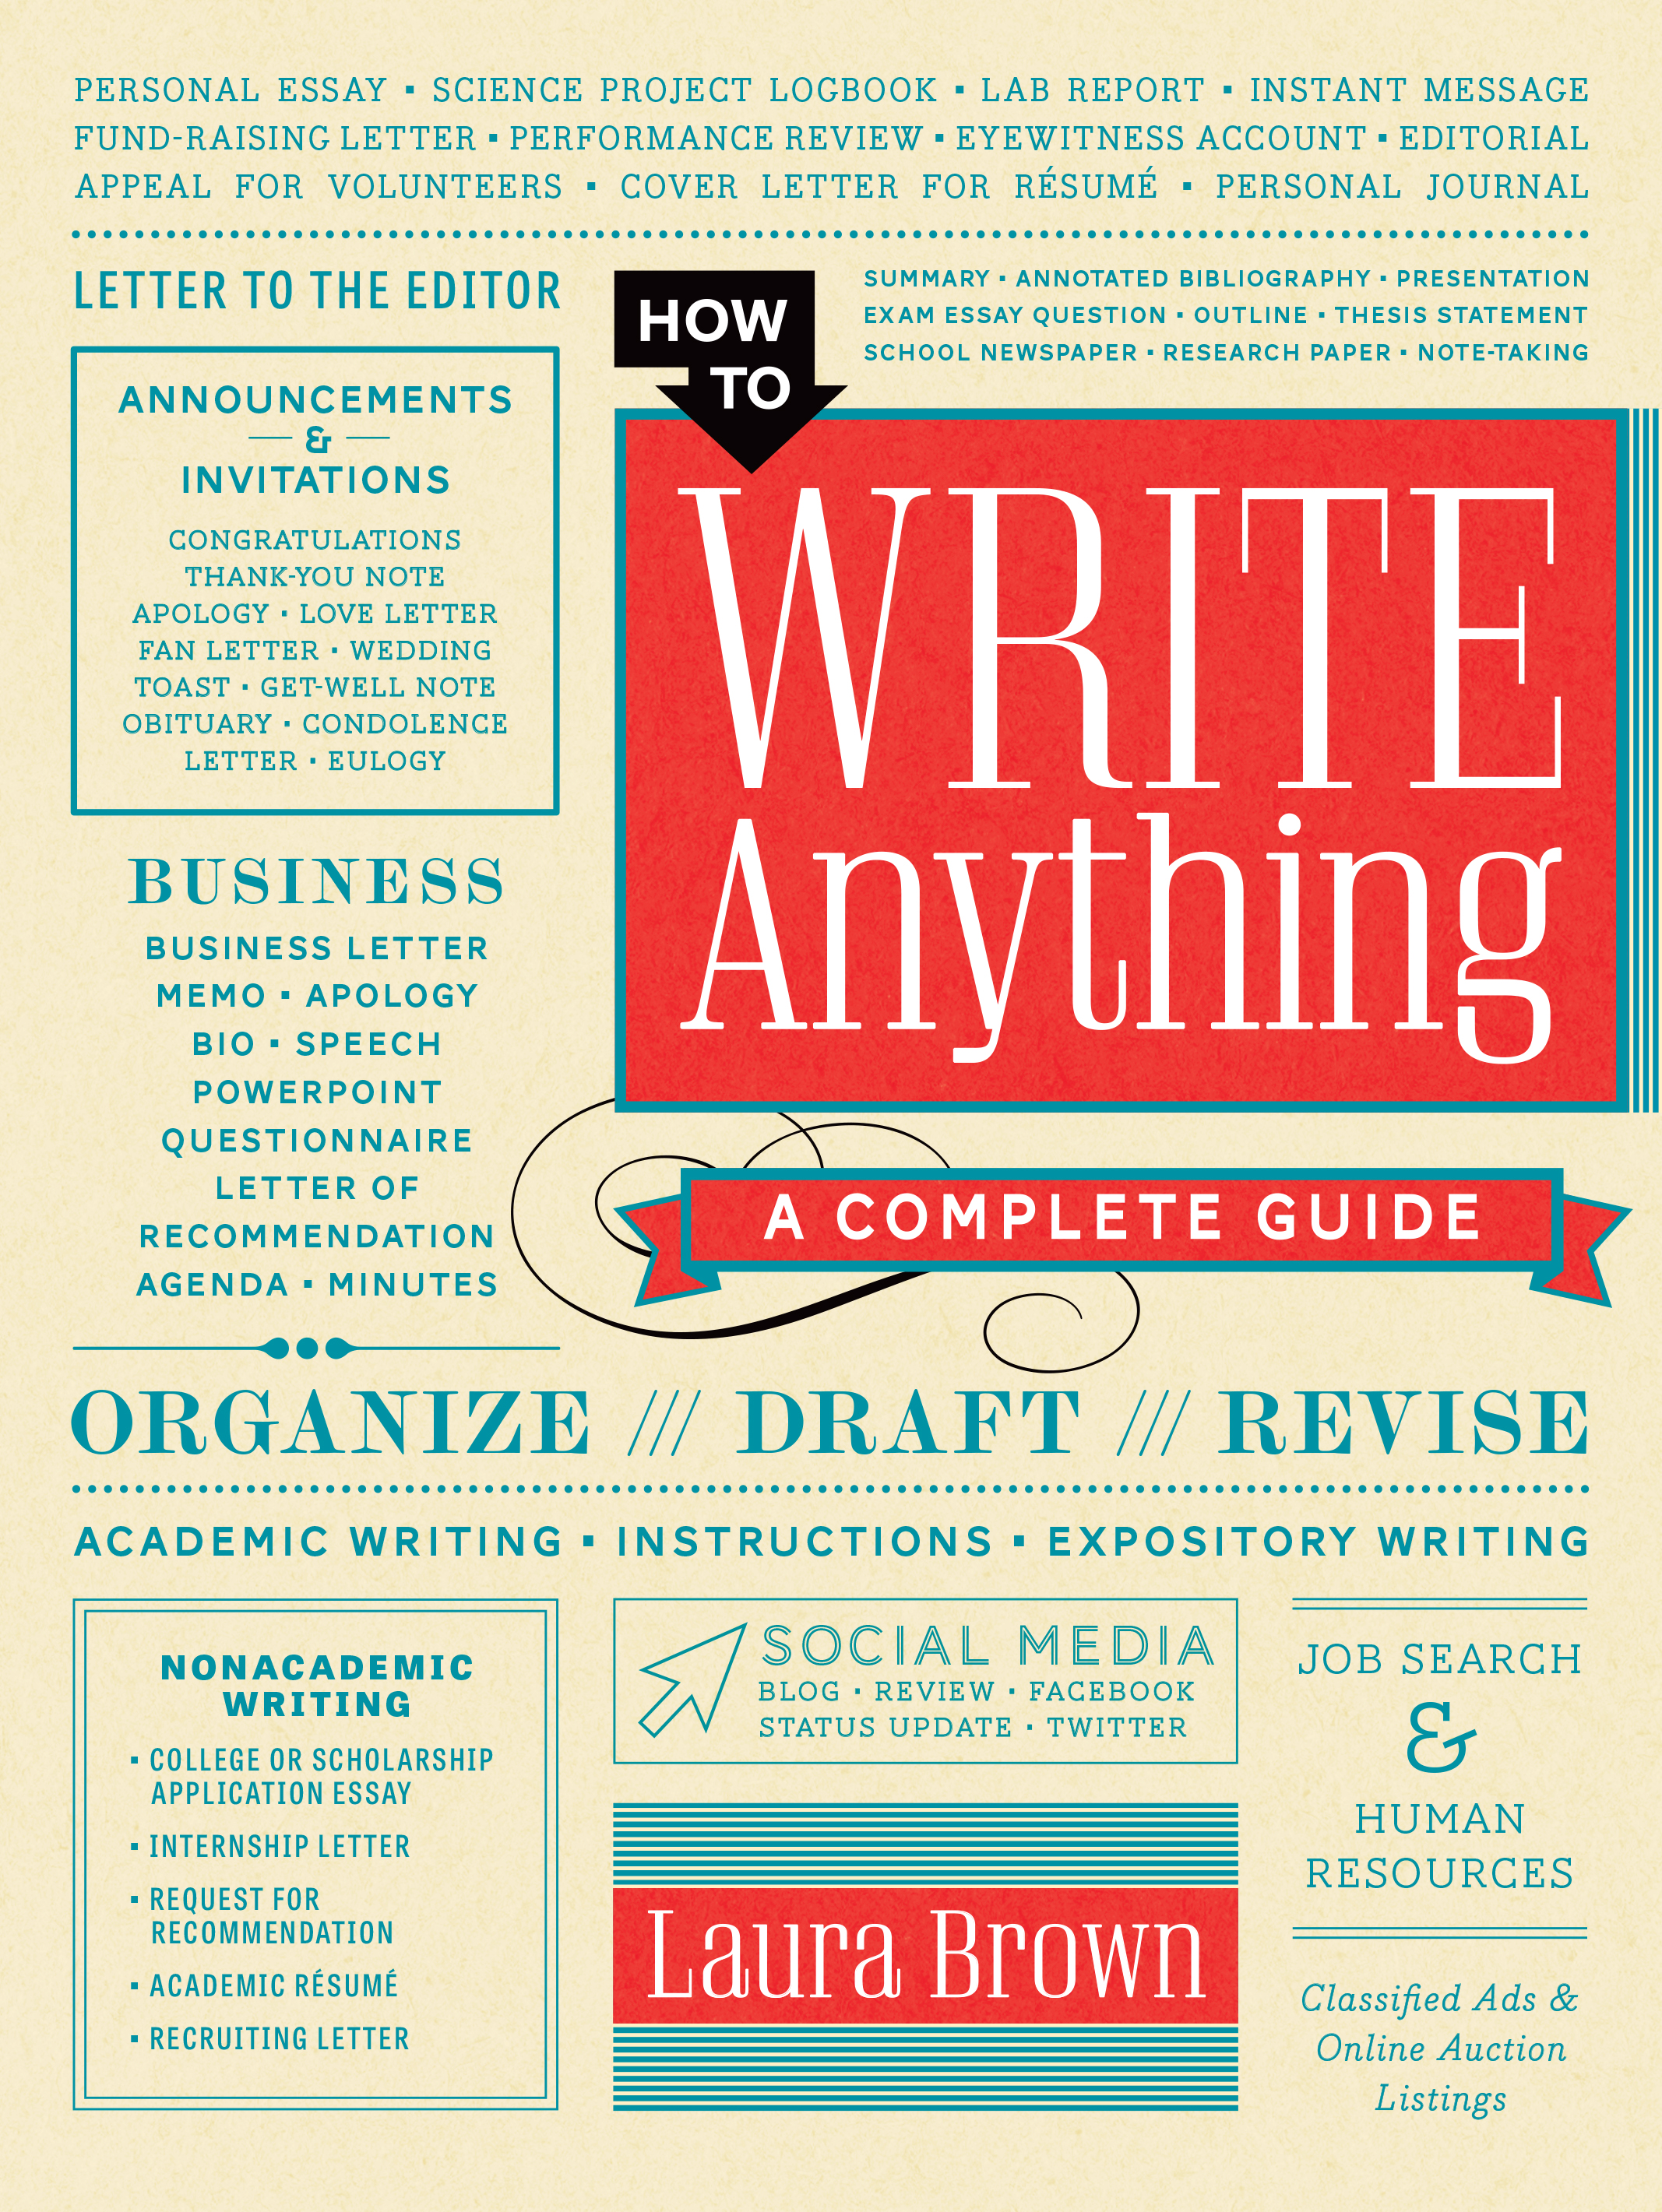 How to Write Anything_REV022514_978-0-393-24014-6.indd